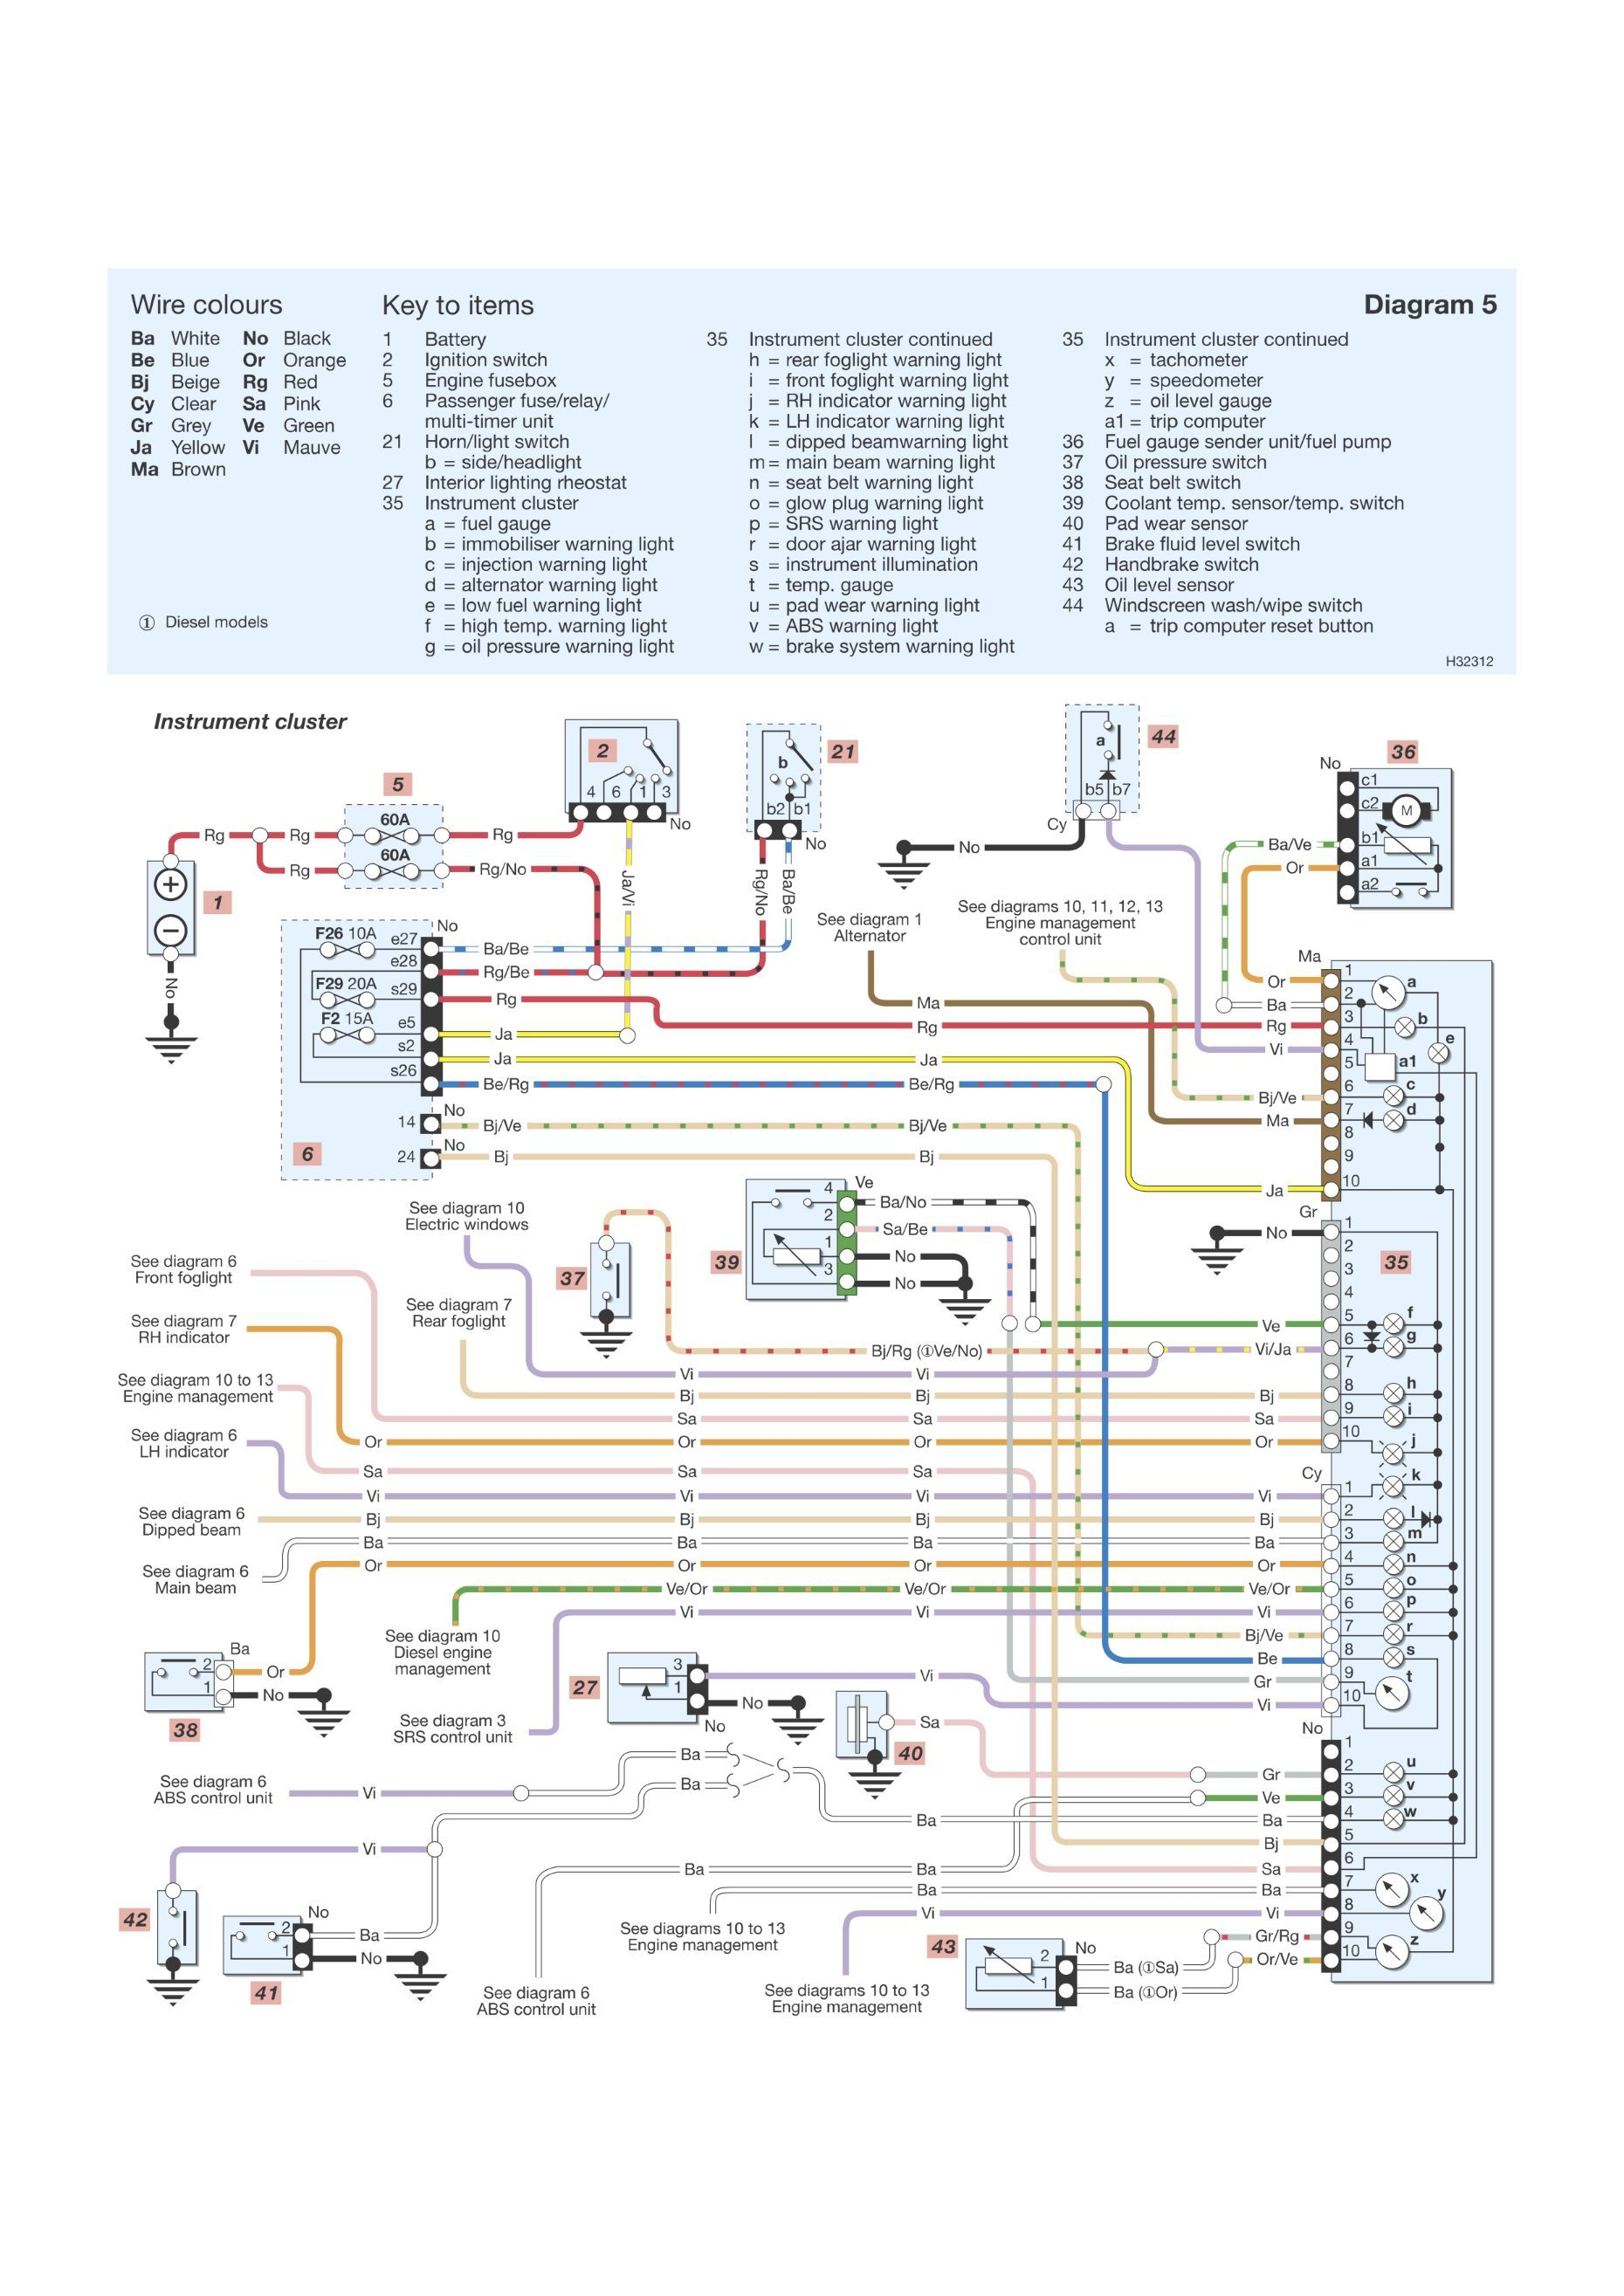 medium resolution of renault trafic wiring diagram download car stuff diagram cars wiring diagrams peugeot as well toyota land cruiser 1973 fj40 wiring